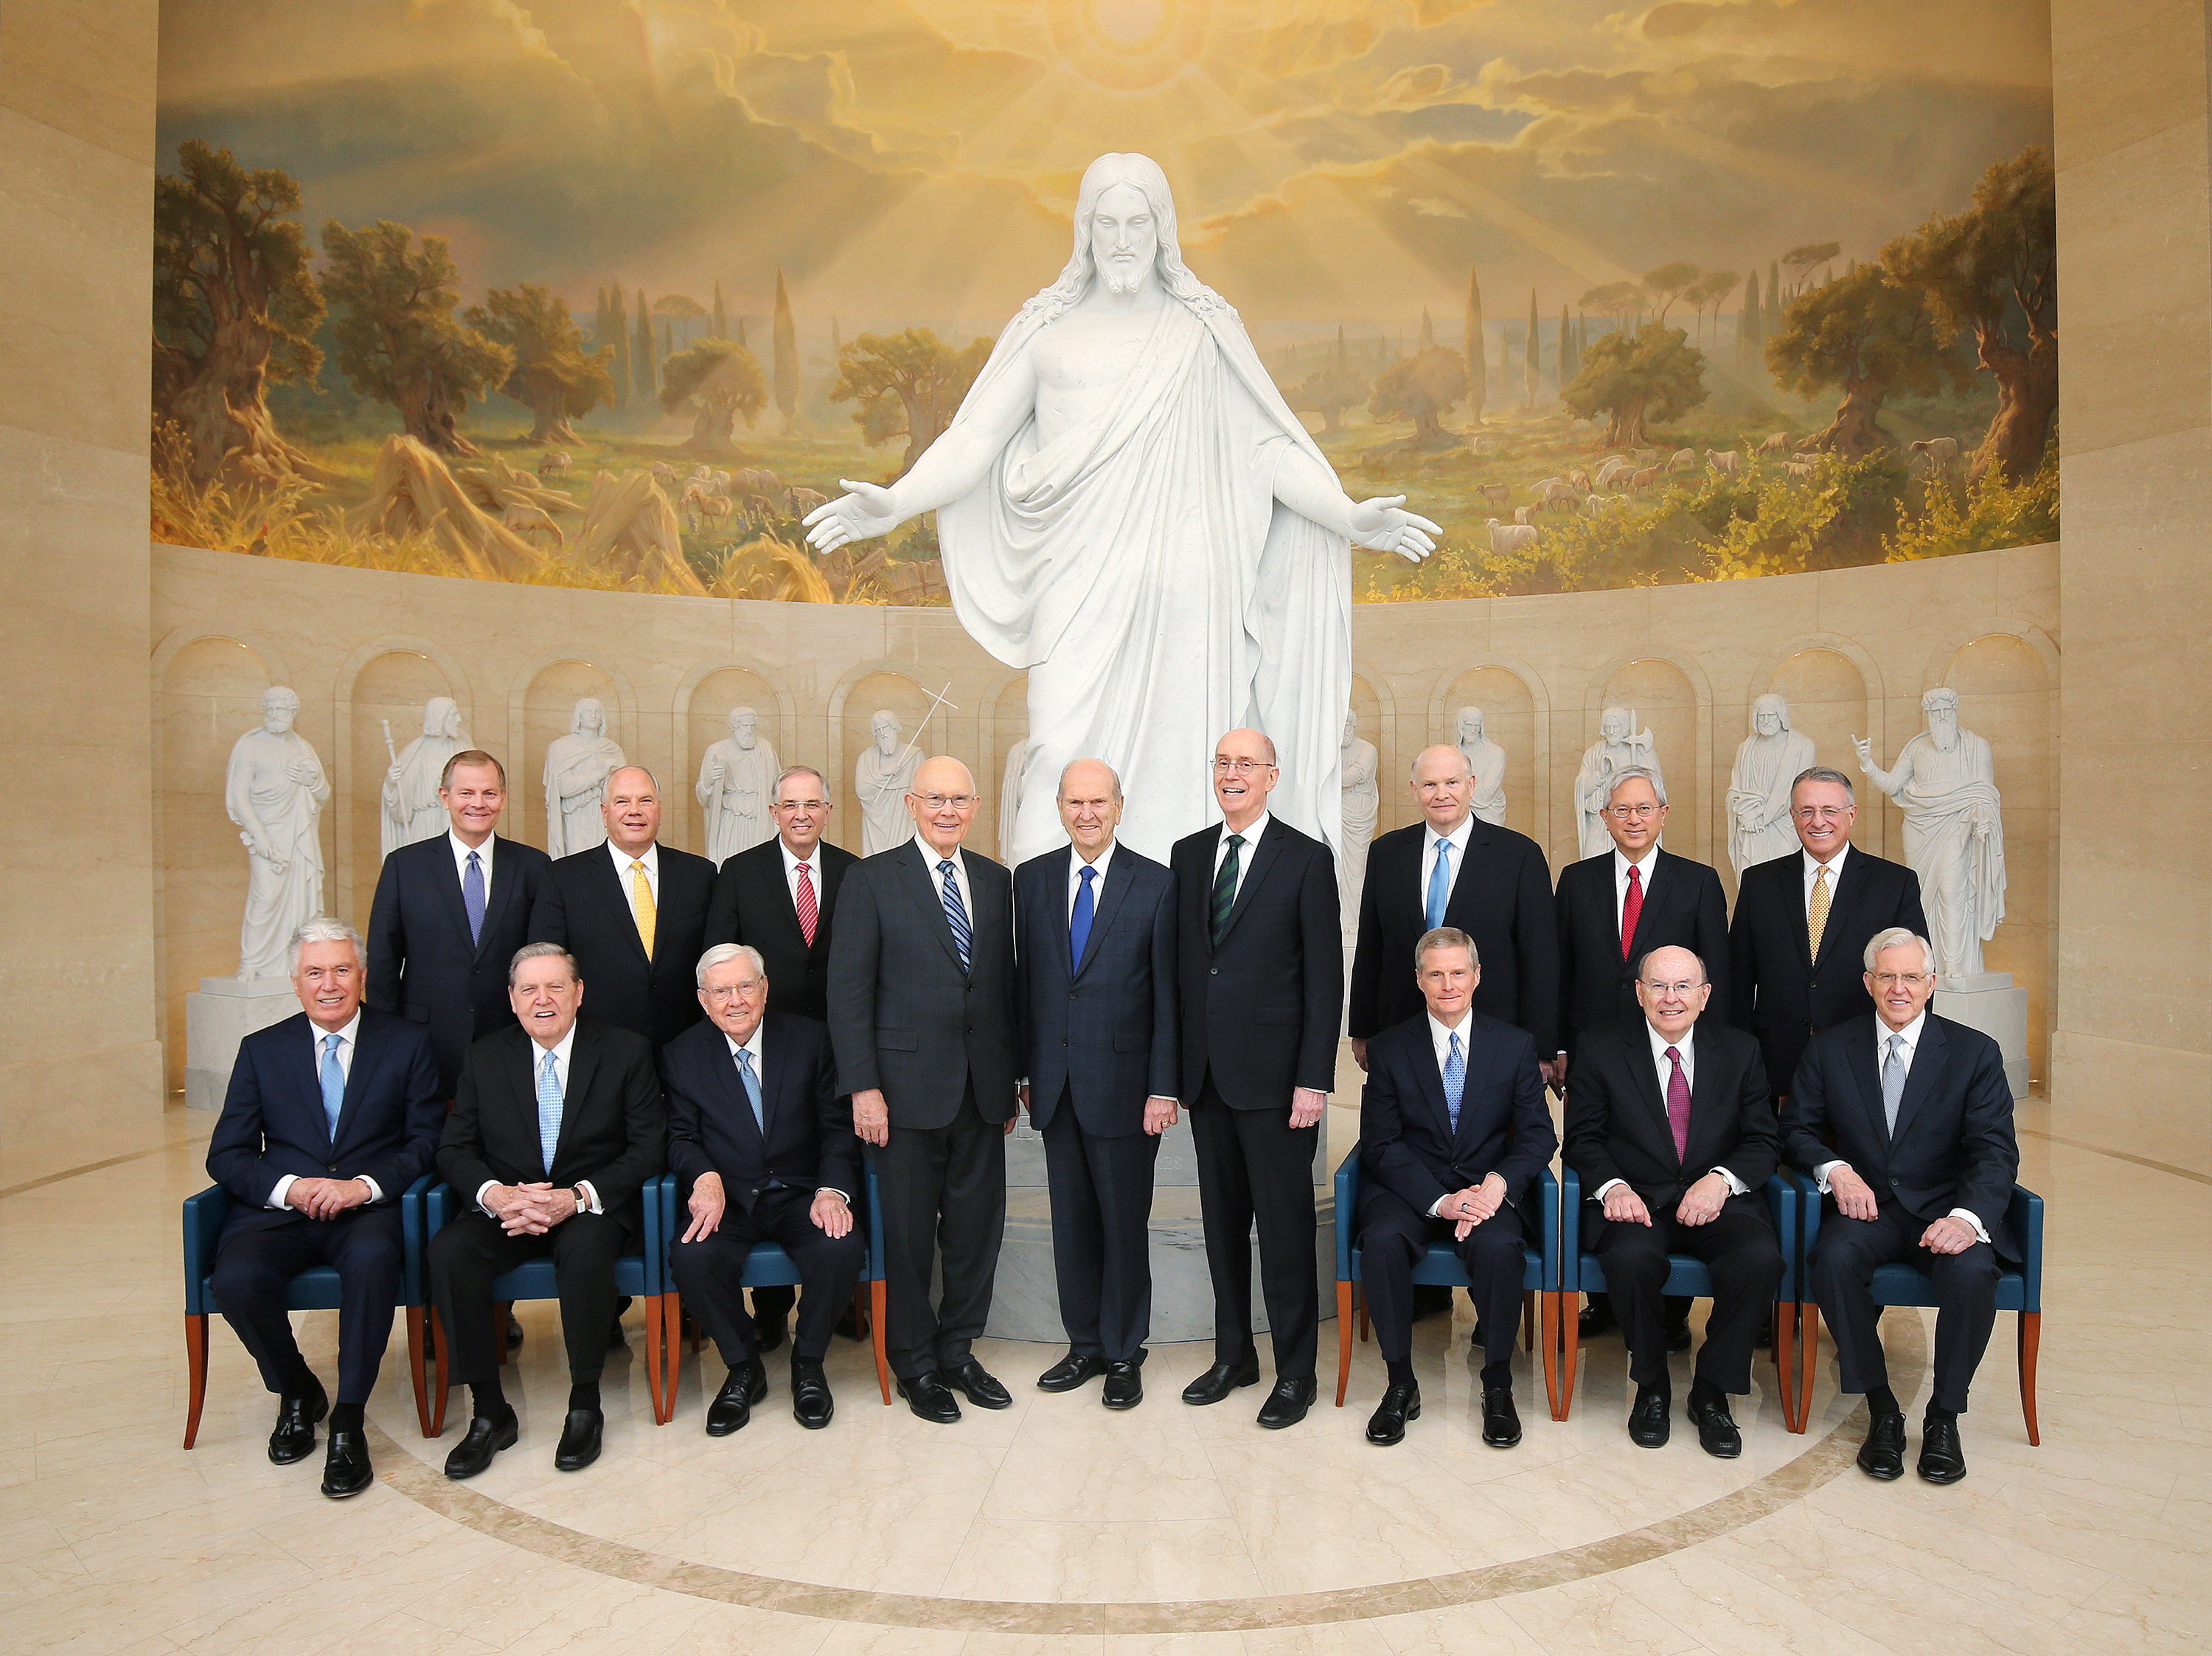 Every member of the First Presidency and the Quorum of the Twelve Apostles of The Church of Jesus Christ of Latter-day Saints posed for an iconic photograph in the Rome Italy Temple visitors center in Rome, Italy on Monday, March 11, 2019. Front center are President Russell M. Nelson and his counselors in the First Presidency, President Dallin H. Oaks and President Henry B. Eyring. Also included are members of the Quorum of the Twelve Apostles: President M. Russell Ballard, Elder Jeffrey R. Holland, Elder Dieter F. Uchtdorf, Elder David A. Bednar, Elder Quentin L. Cook, Elder D. Todd Christofferson, Elder Neil L. Andersen, Elder Ronald A. Rasband, Elder Gary E. Stevenson, Elder Dale G. Renlund, Elder Gerrit W. Gong and Elder Ulisses Soares.